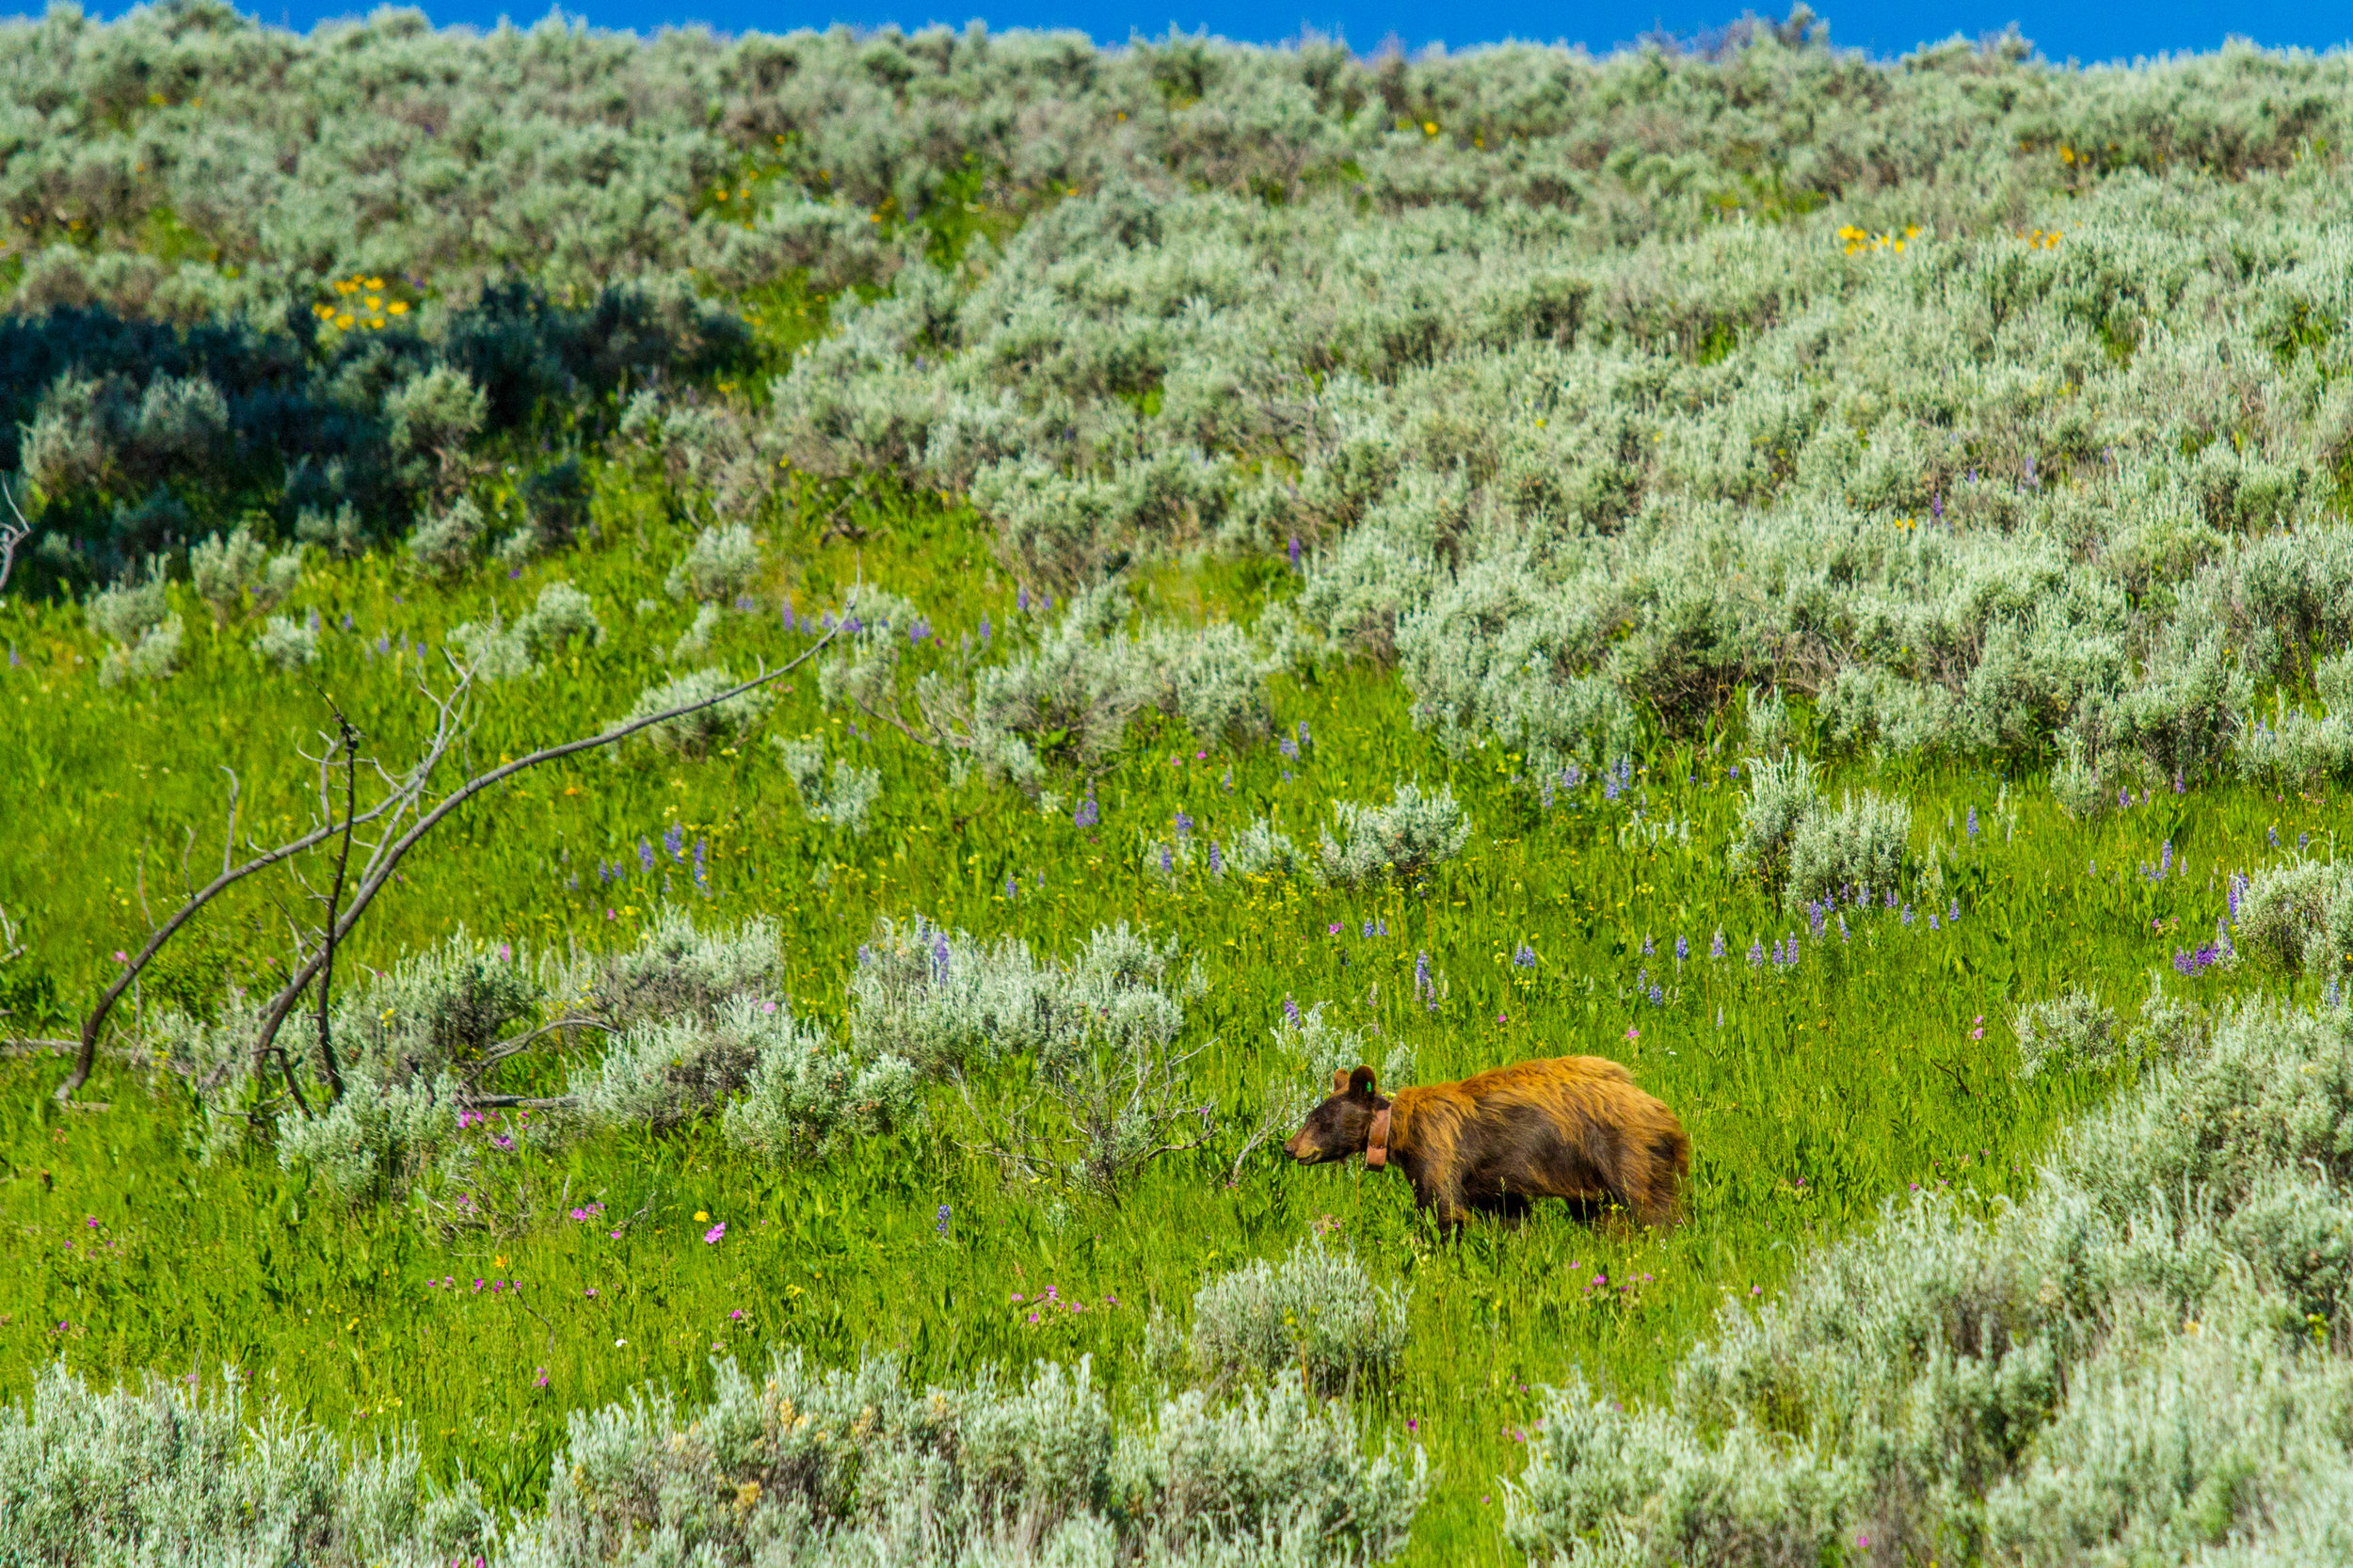 Lamar Valley, Yellowstone National Park, Image # 5174